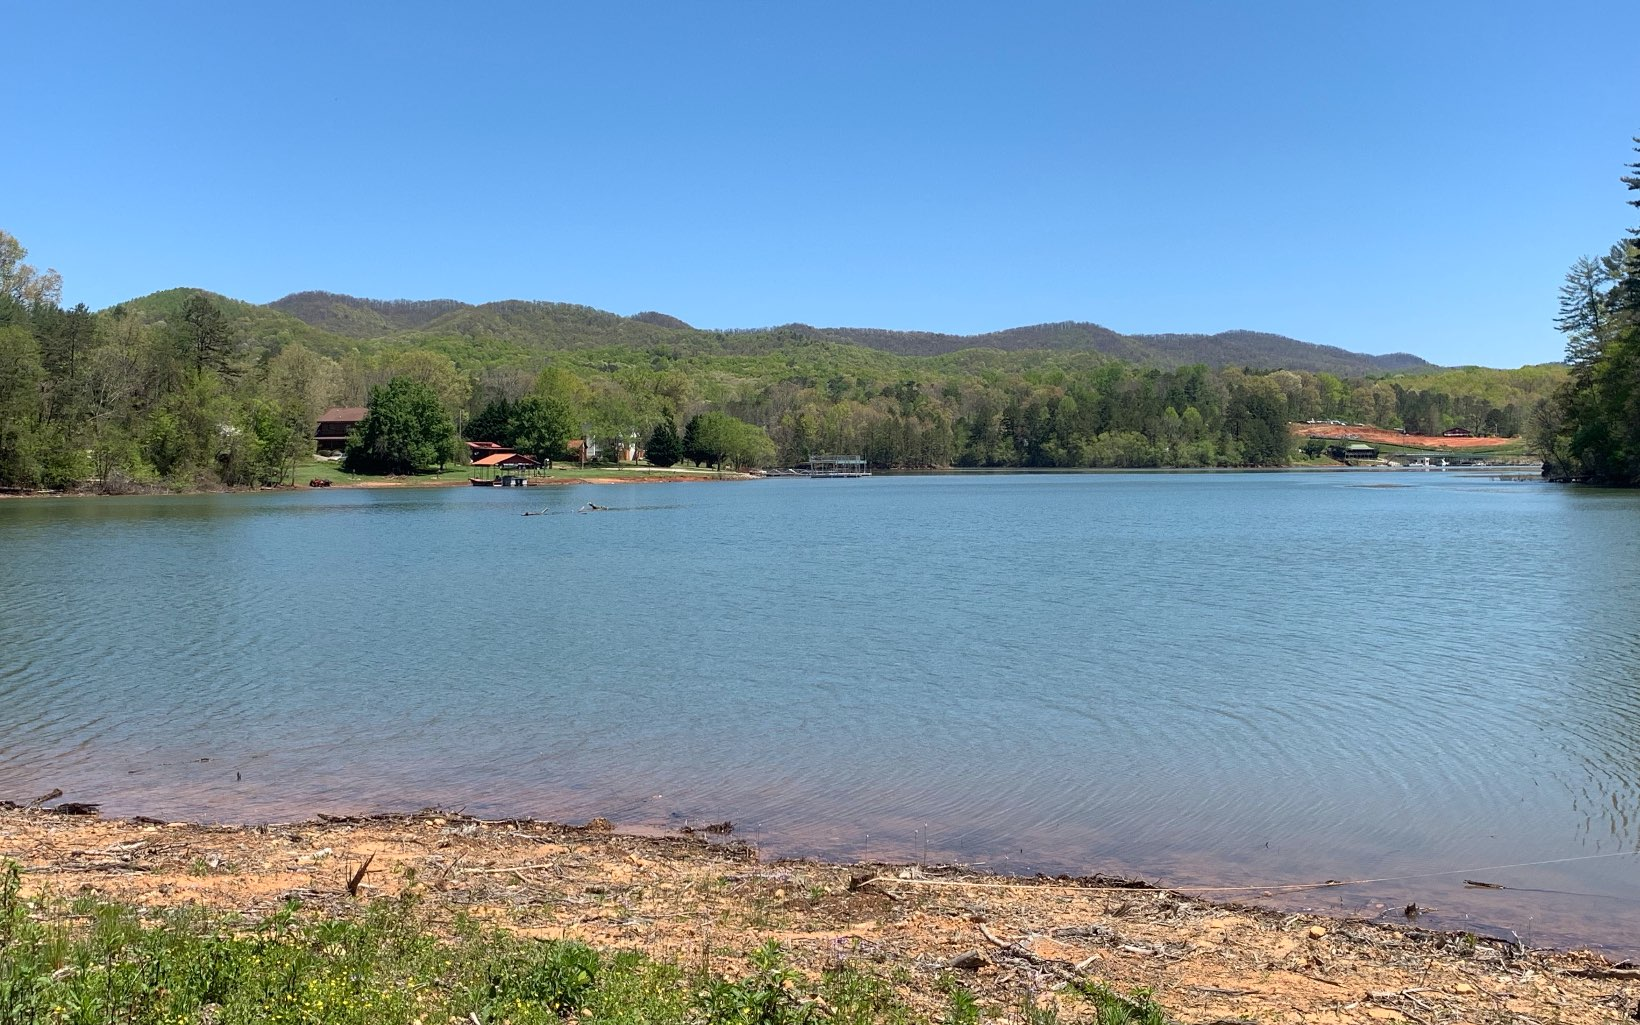 MLS #287227 - Best Lake Lot on the market! Approx  100 feet of